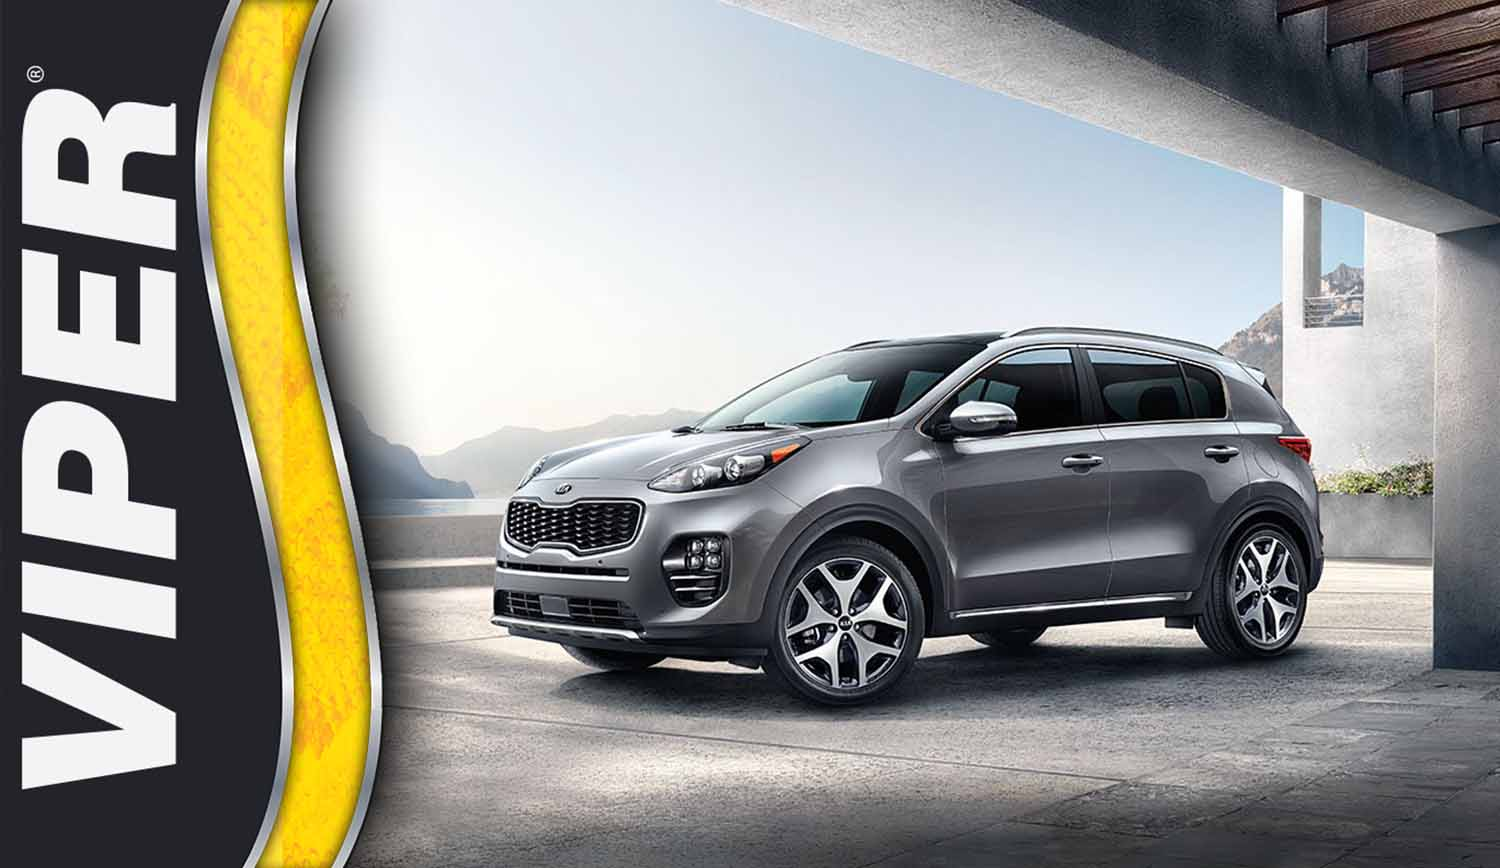 hight resolution of building the ultimate security and convenience system for the 2015 kia sportage with the new viper ds4